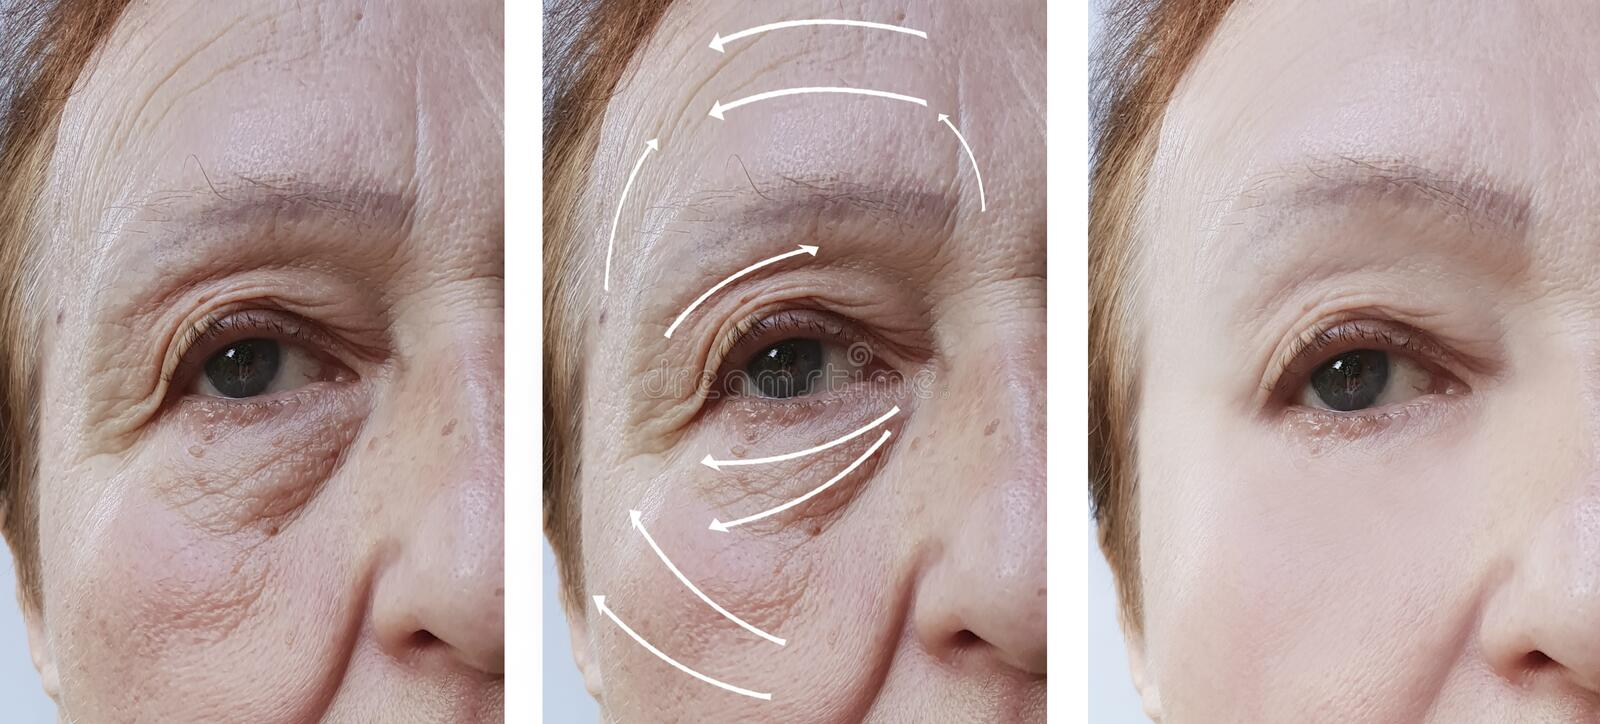 Woman elderly face skin wrinkles hydrating cosmetology rejuvenation before and after procedures, arrow stock images